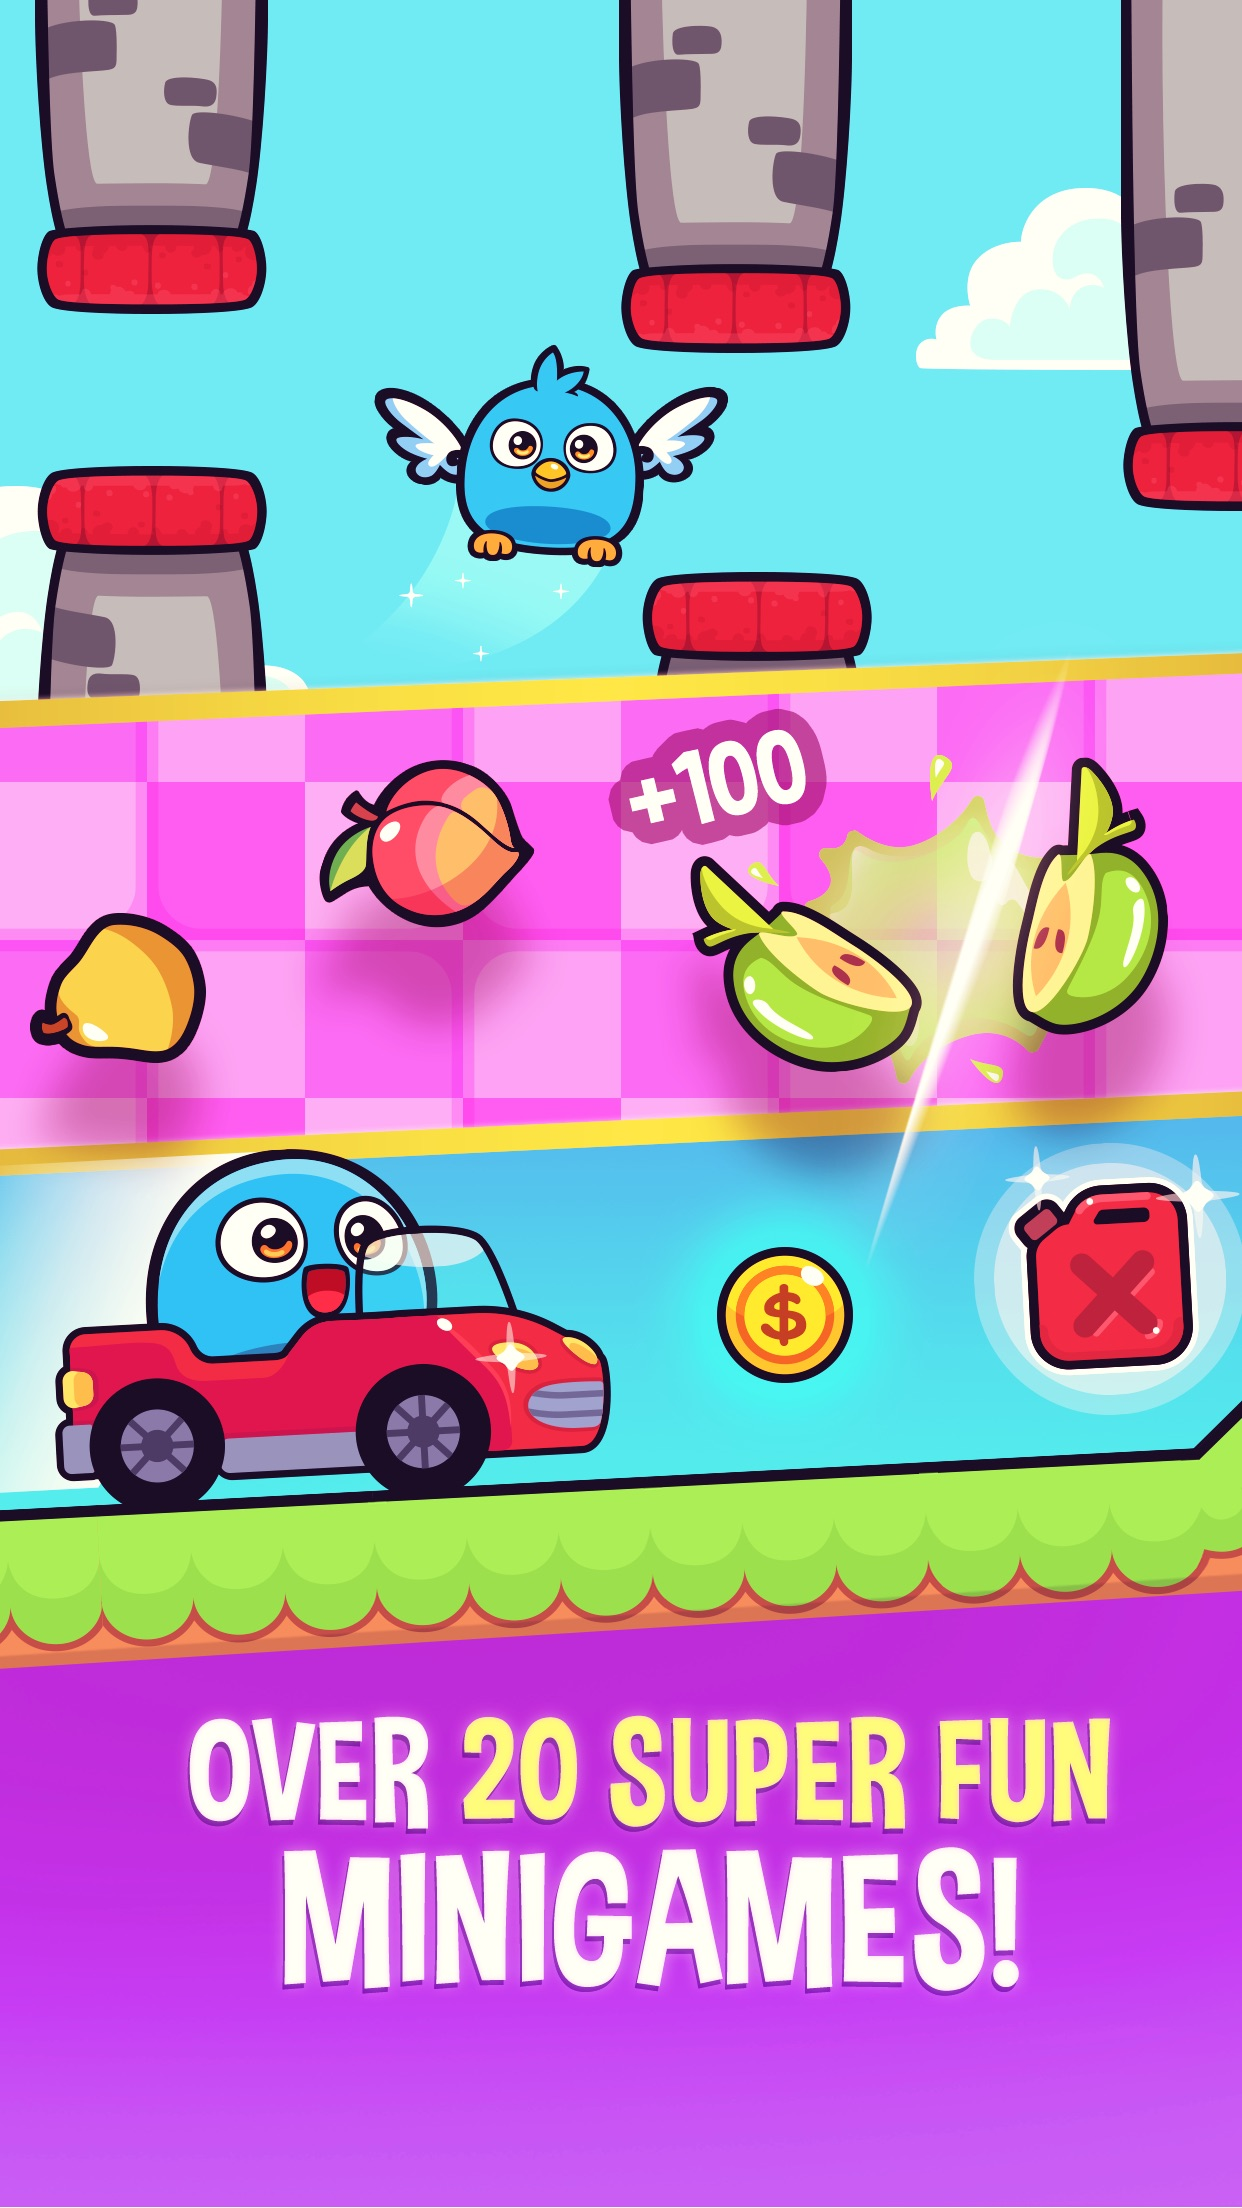 My Boo Virtual Pet & Mini Game Screenshot